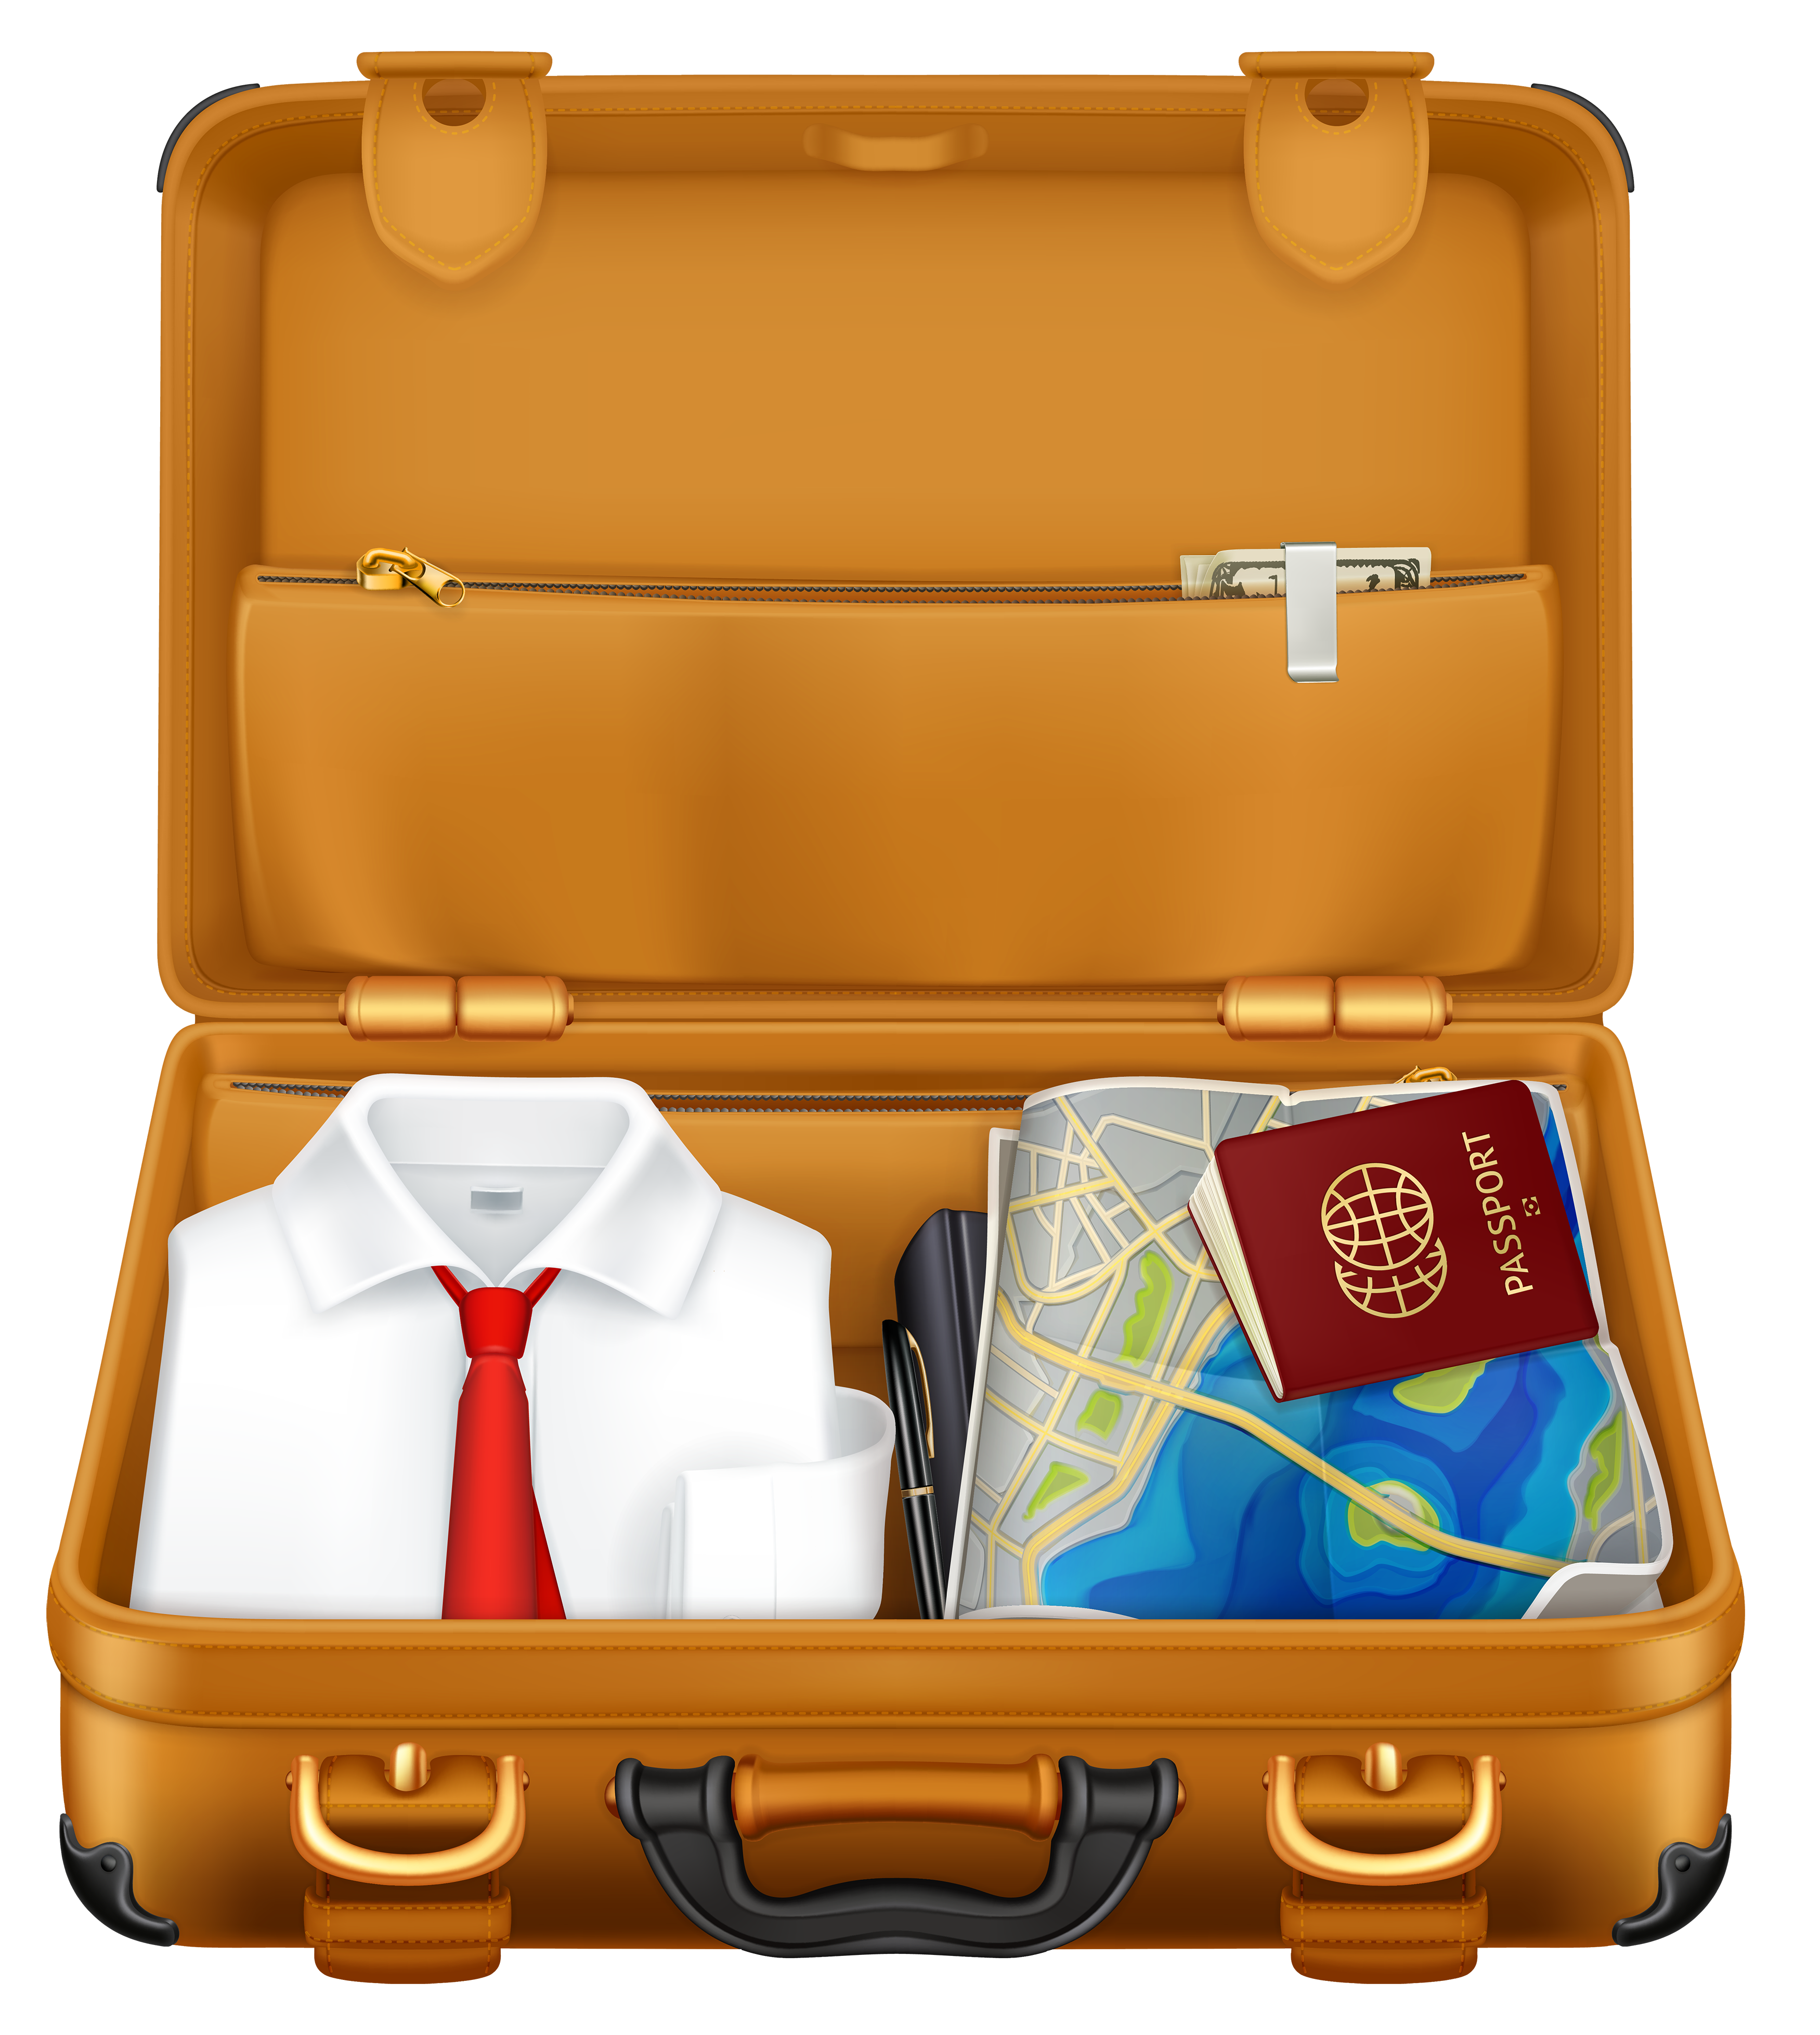 Travel clipart holiday suitcase On Brown Suitcases Art Clipart